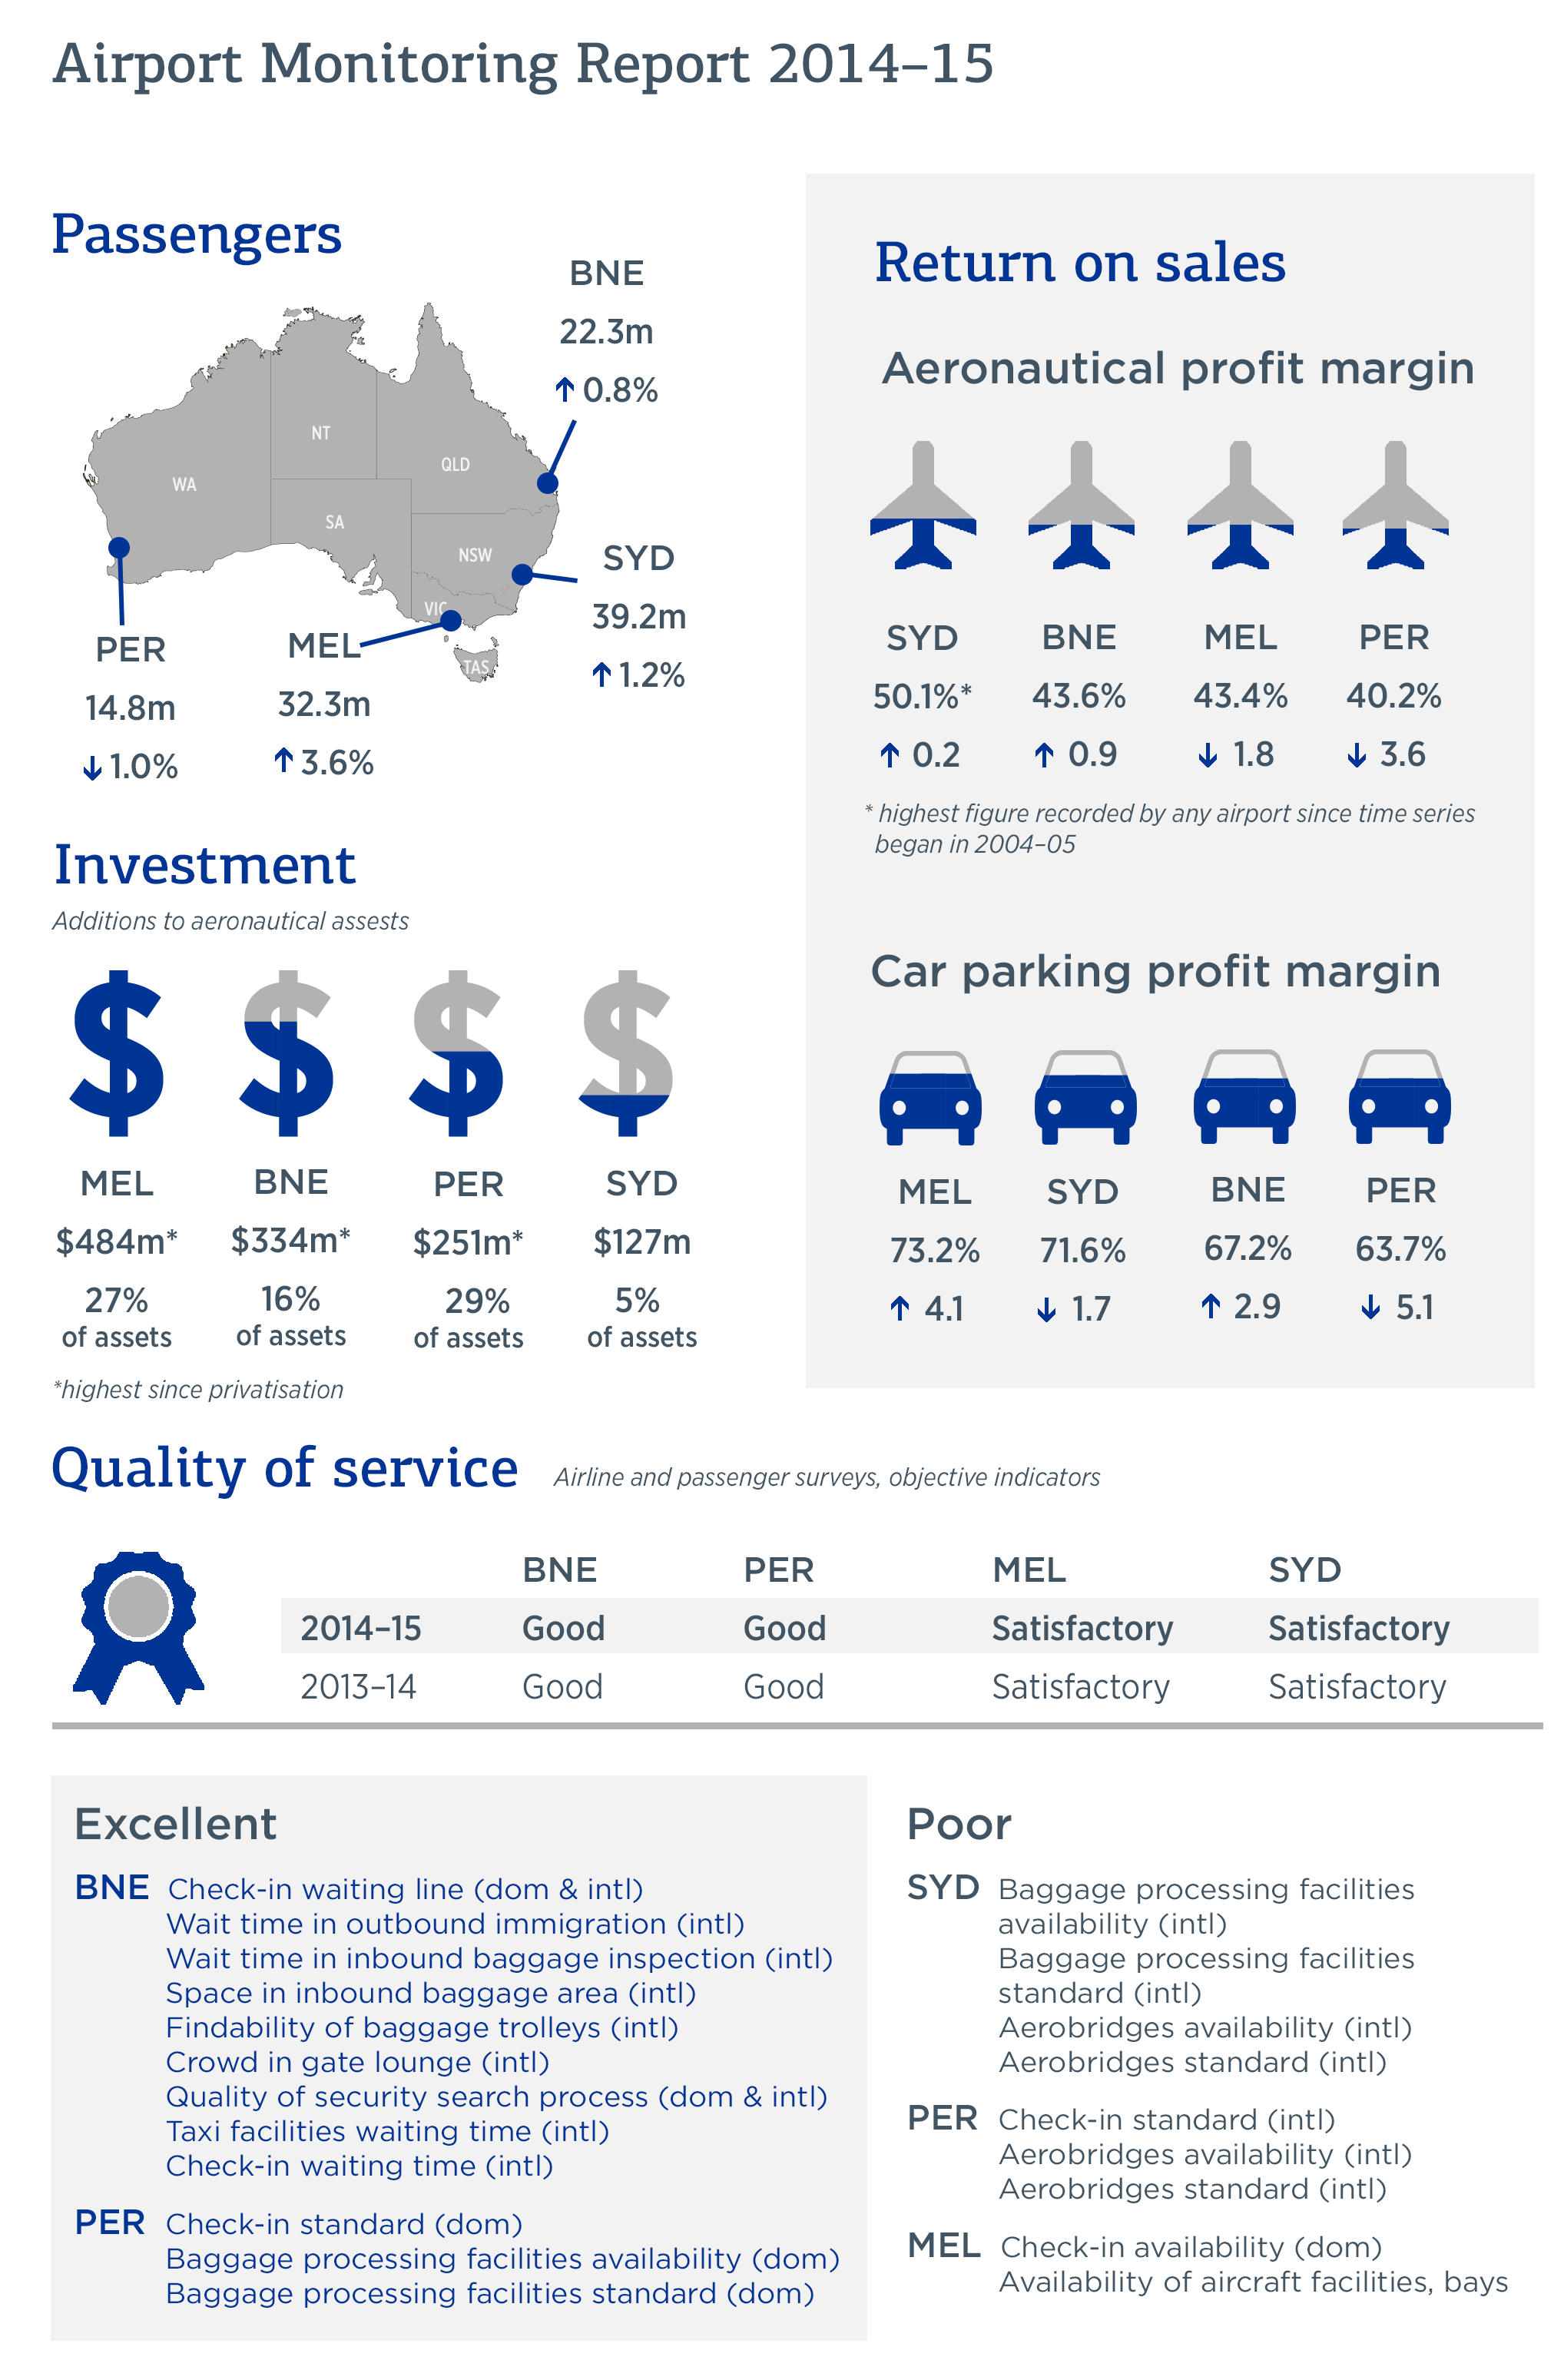 Airport monitoring report 2014-15 - Infographic